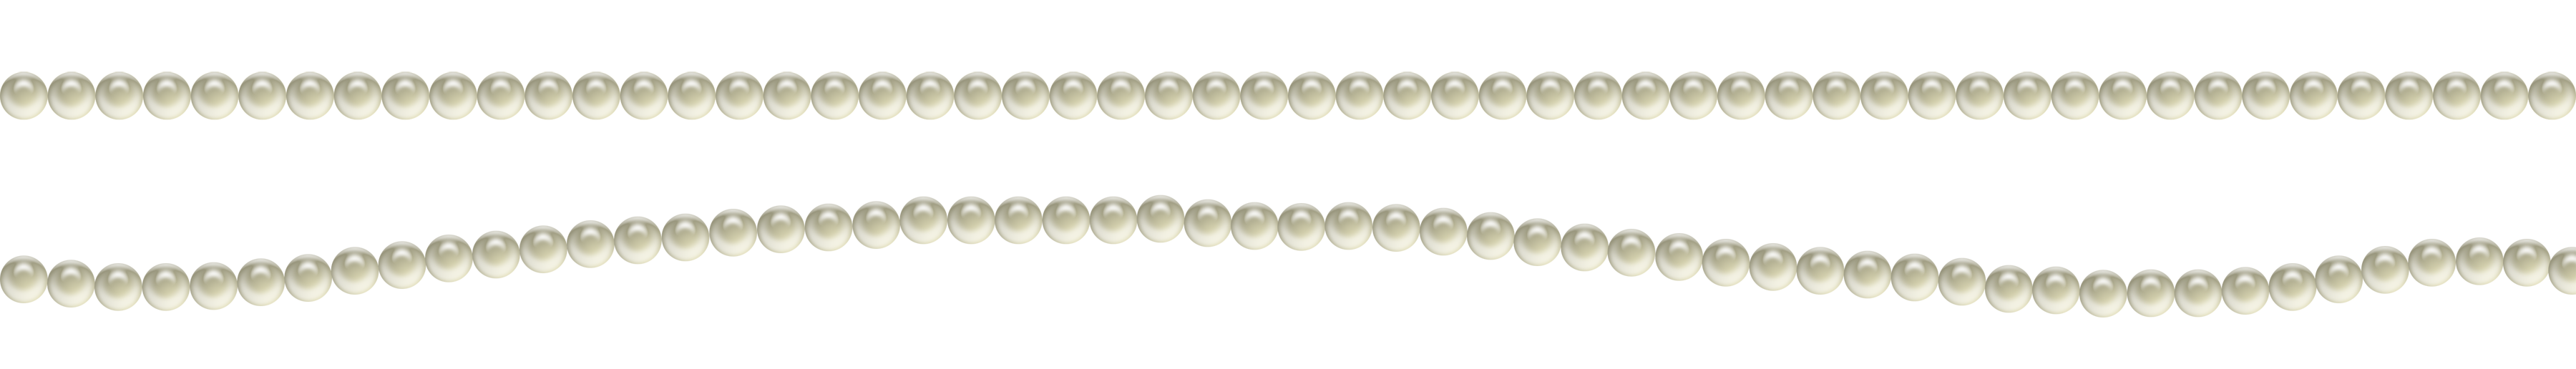 Jewelry clipart string. Pearls png images free